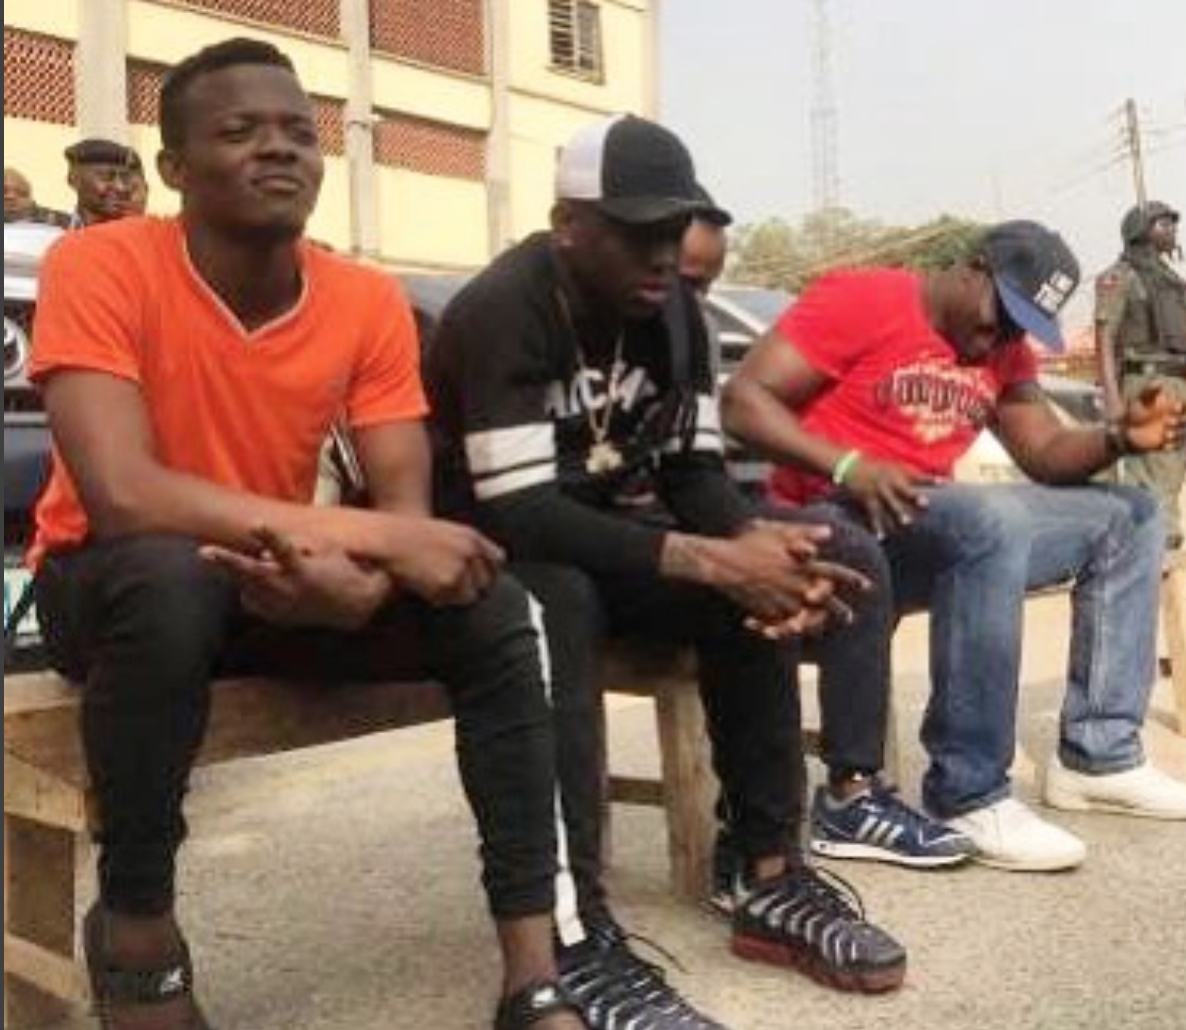 Small Doctor Arrested For Illegal Gun Possession And Threatening A Police Officer